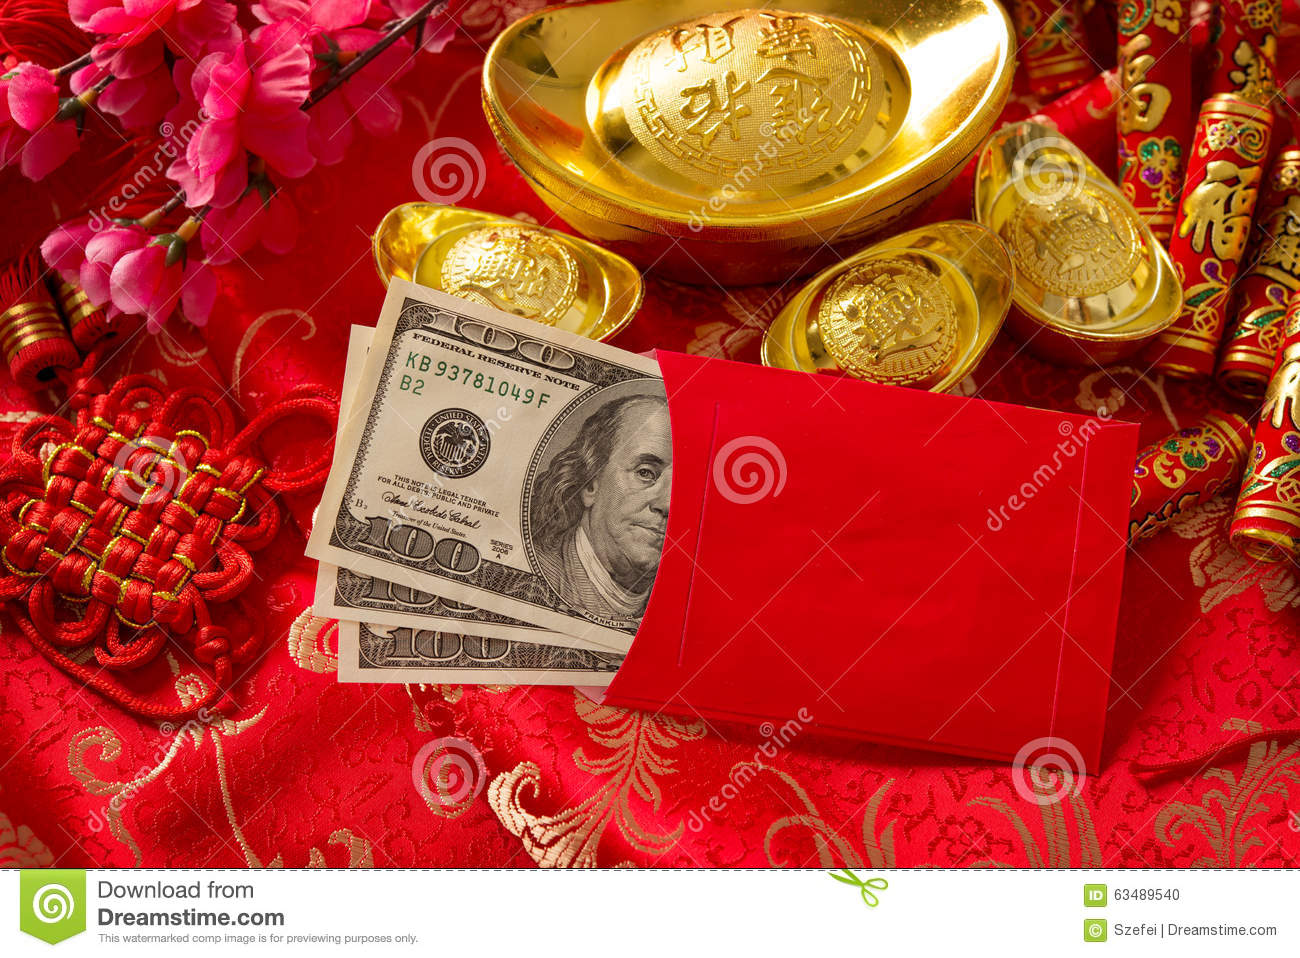 chinese new year red envelope with dollars inside - Red Envelopes Chinese New Year